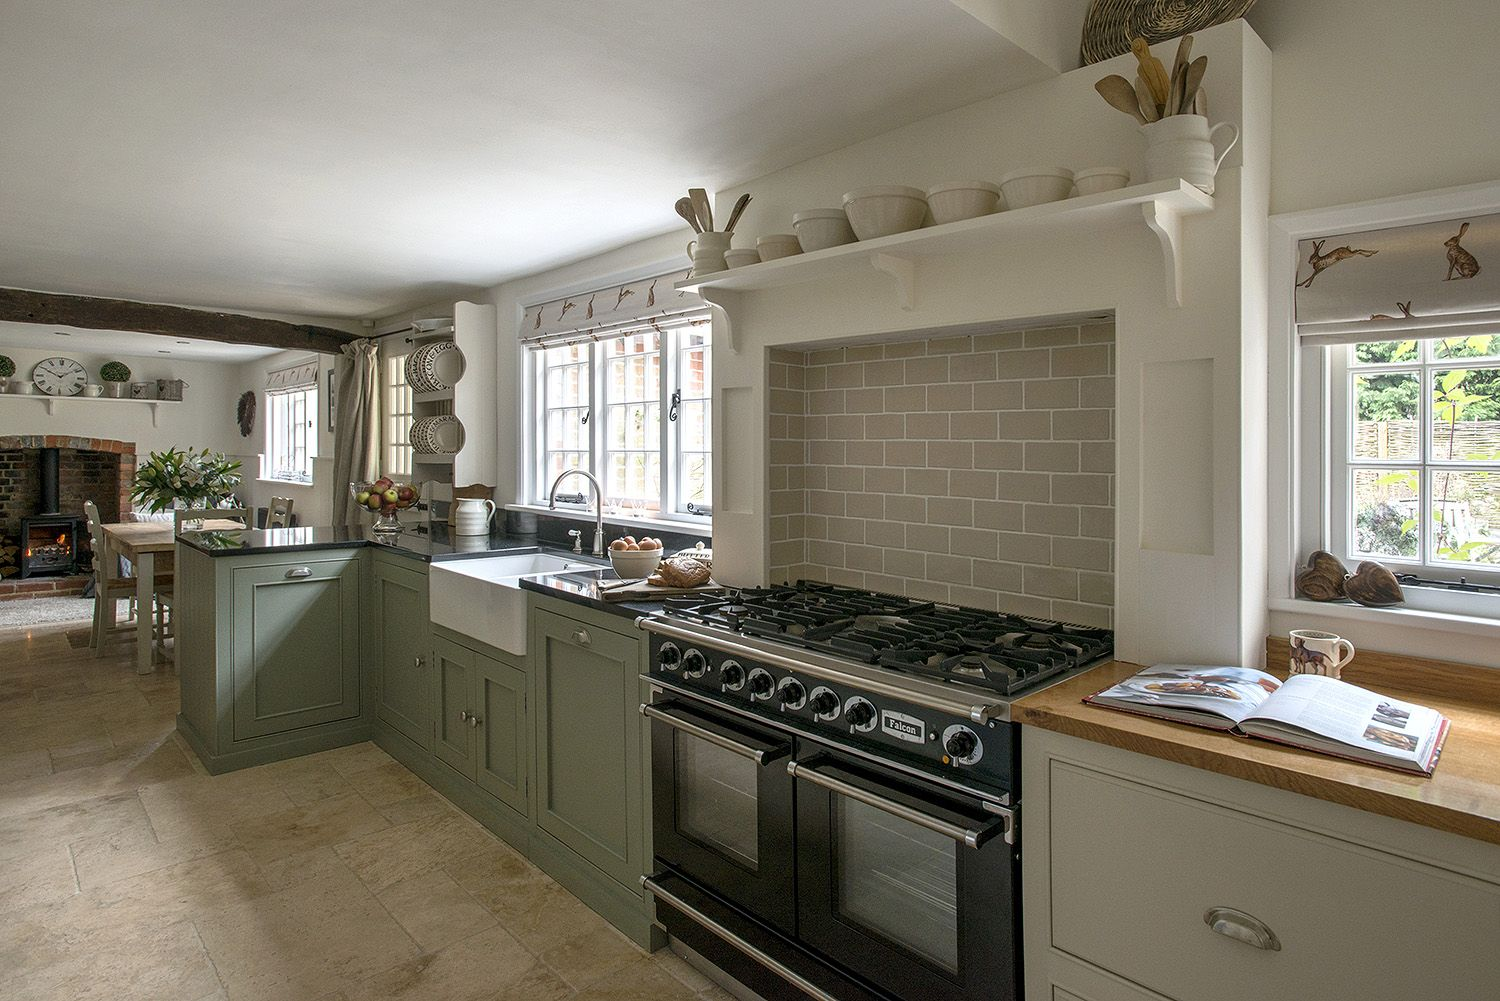 Farmhouse country kitchens design sussex & surrey middleton